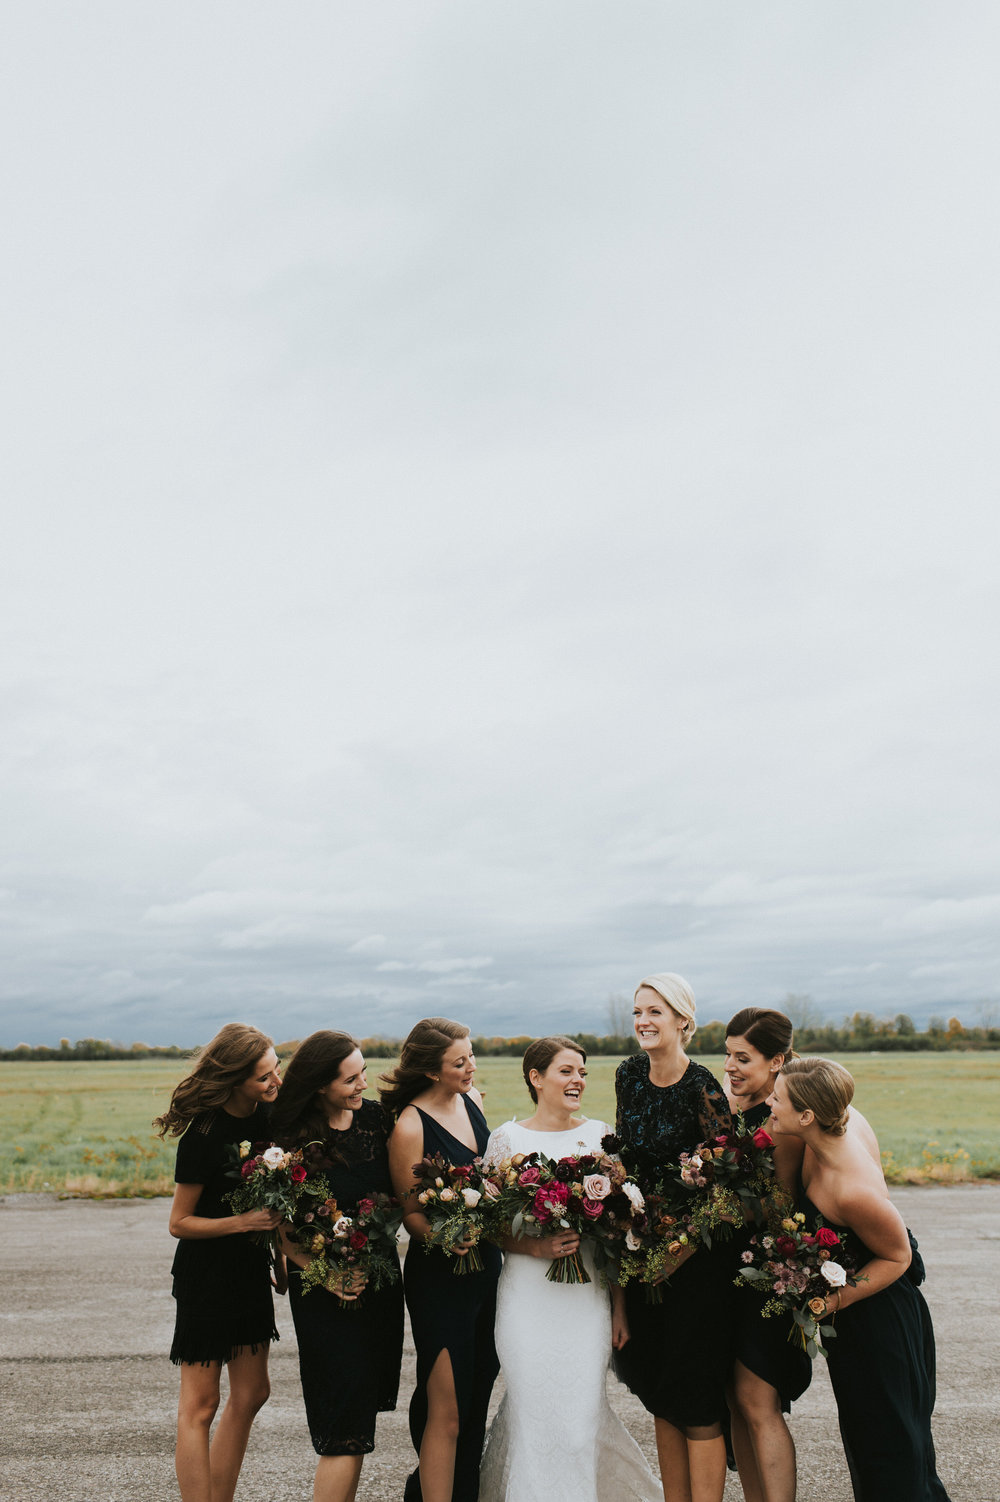 scarletoneillphotography_weddingphotography_prince edward county weddings059.JPG